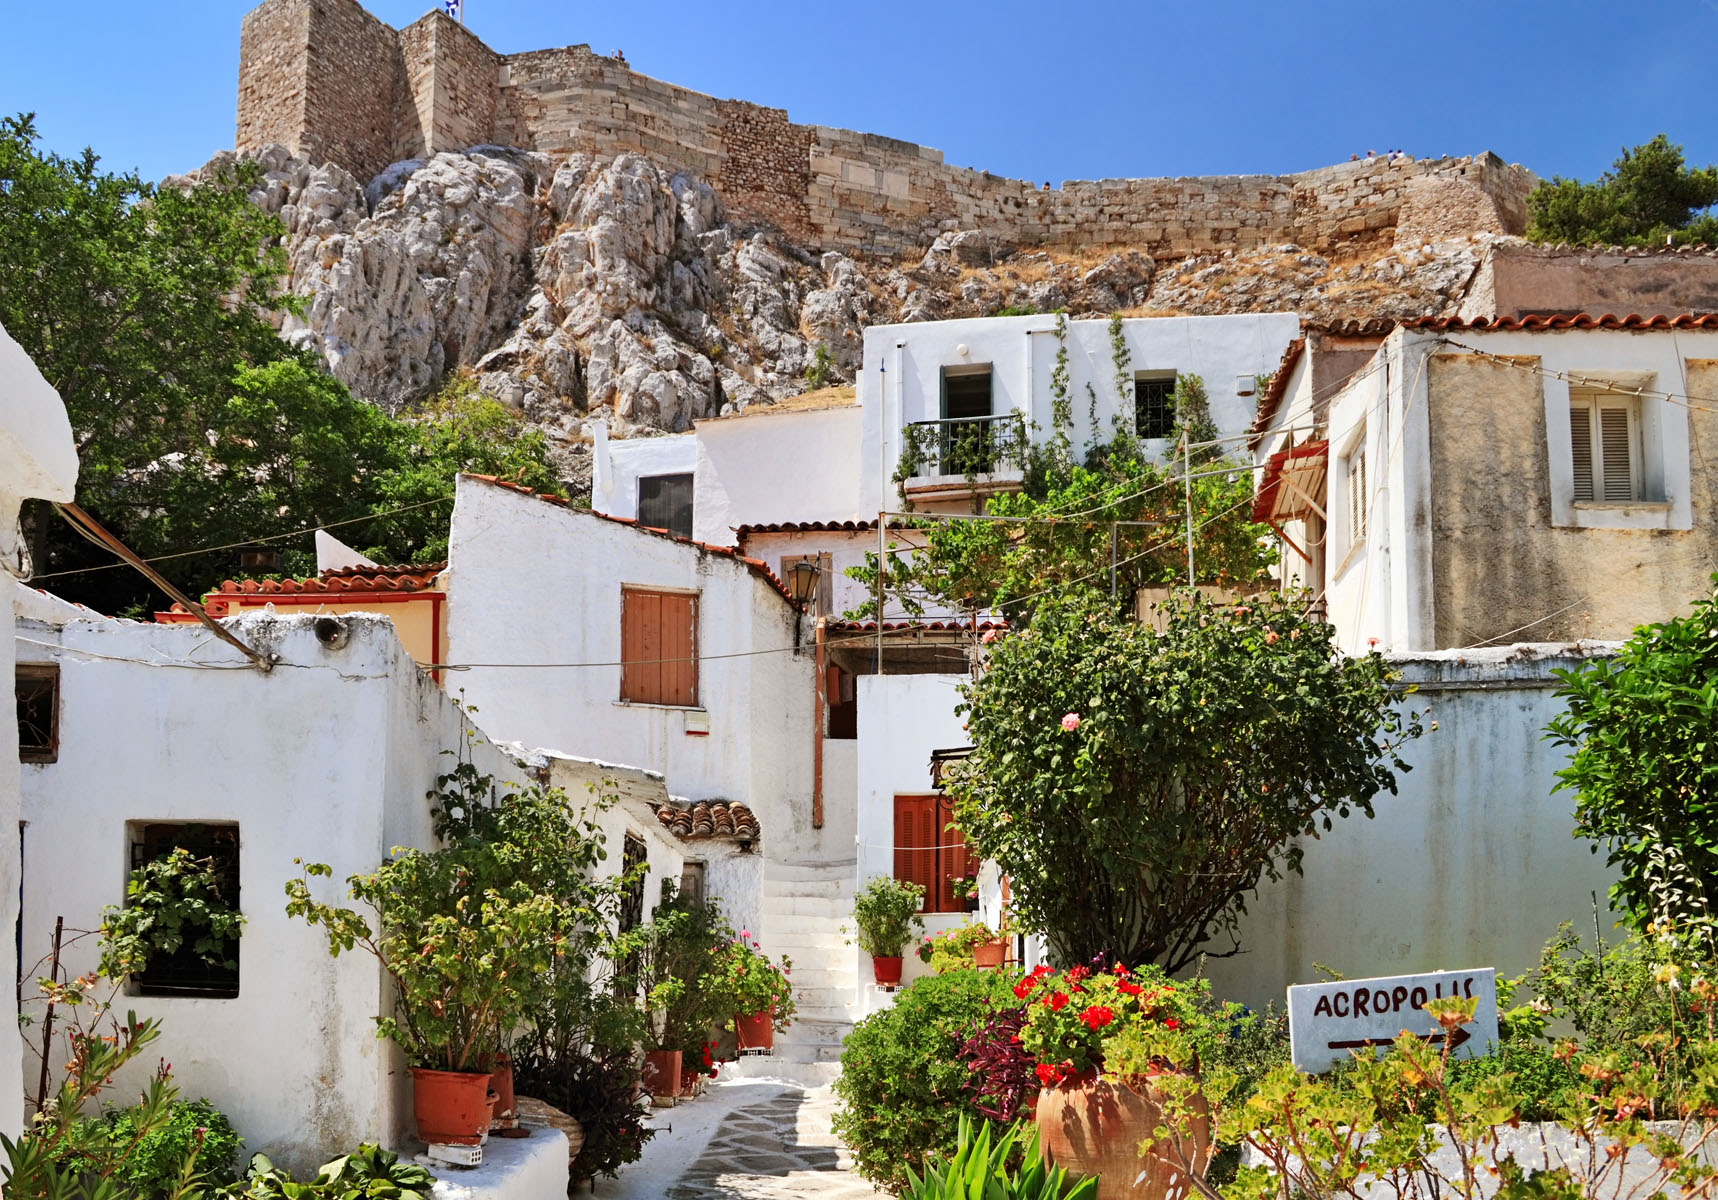 anafiotika-neighborhood-with-white-houses-under-the-acropolis